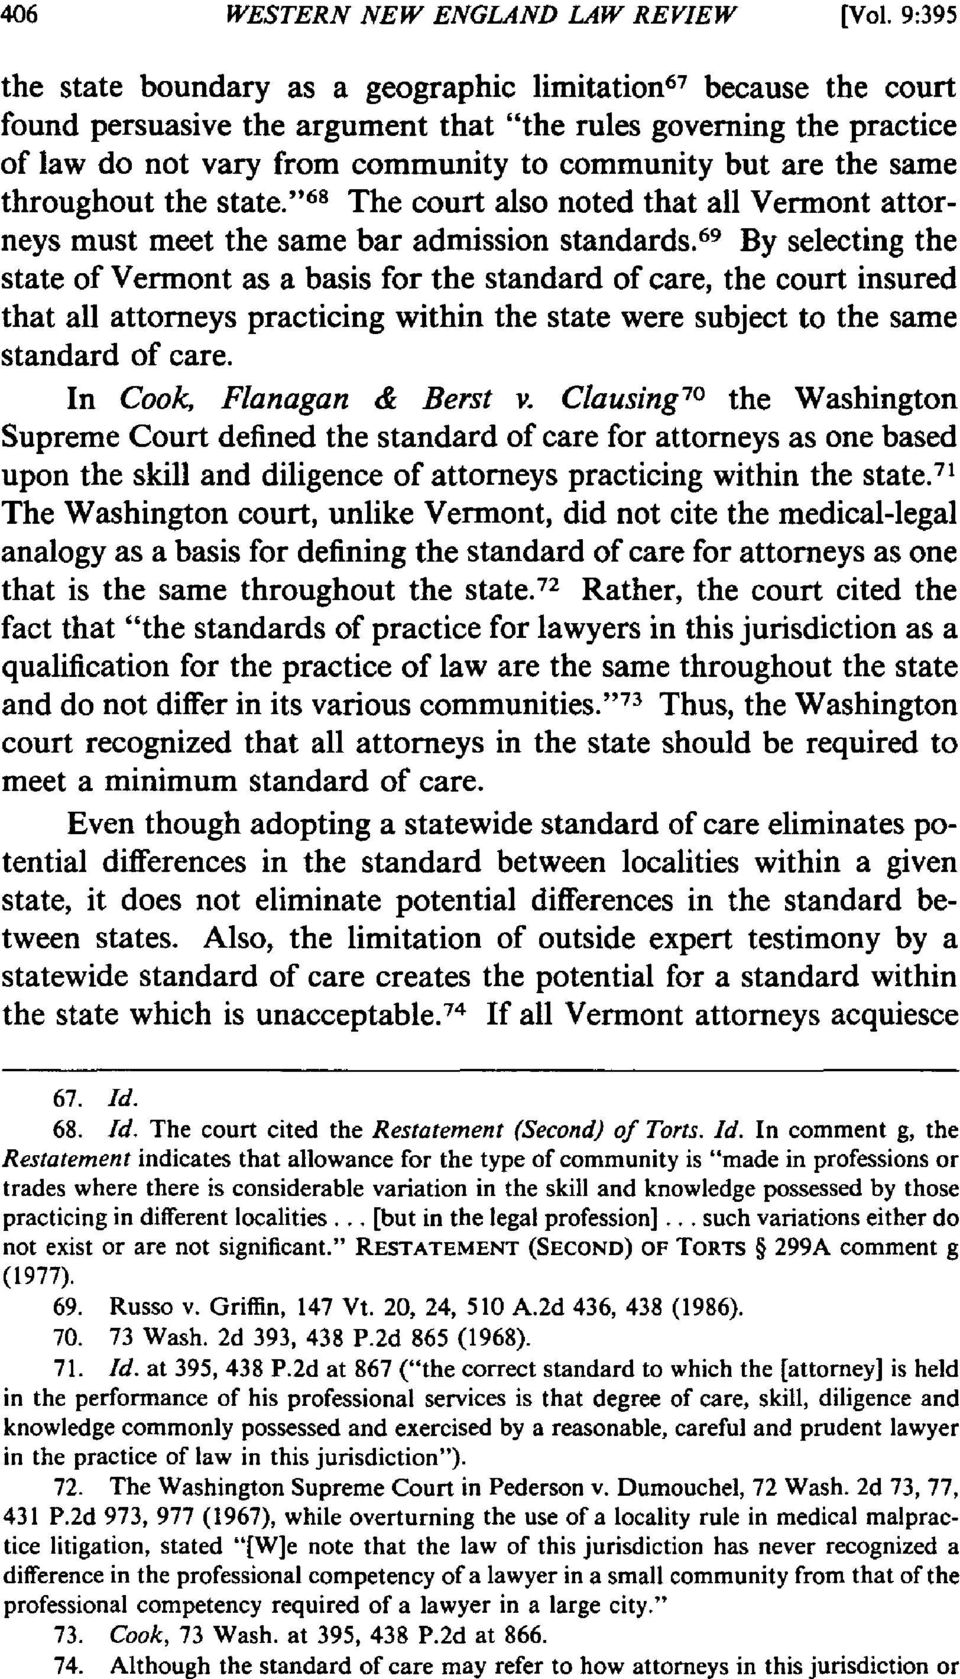 "the same throughout the state.""68 The court also noted that all Vermont attorneys must meet the same bar admission standards."